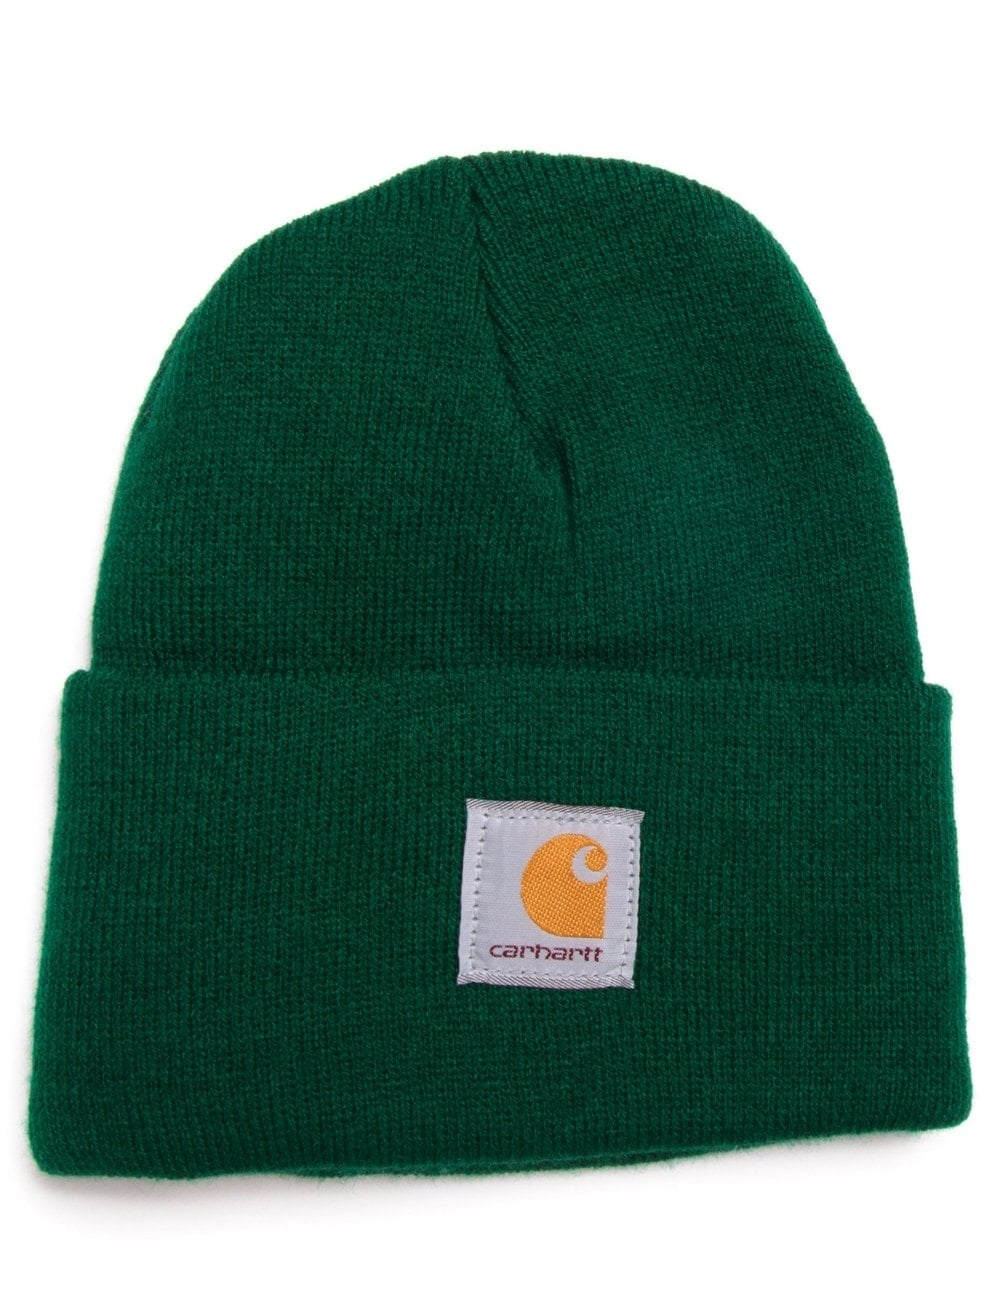 Carhartt WIP Watch Hat - US Forest Green - Accessories from Fat ... 98eab6b6627